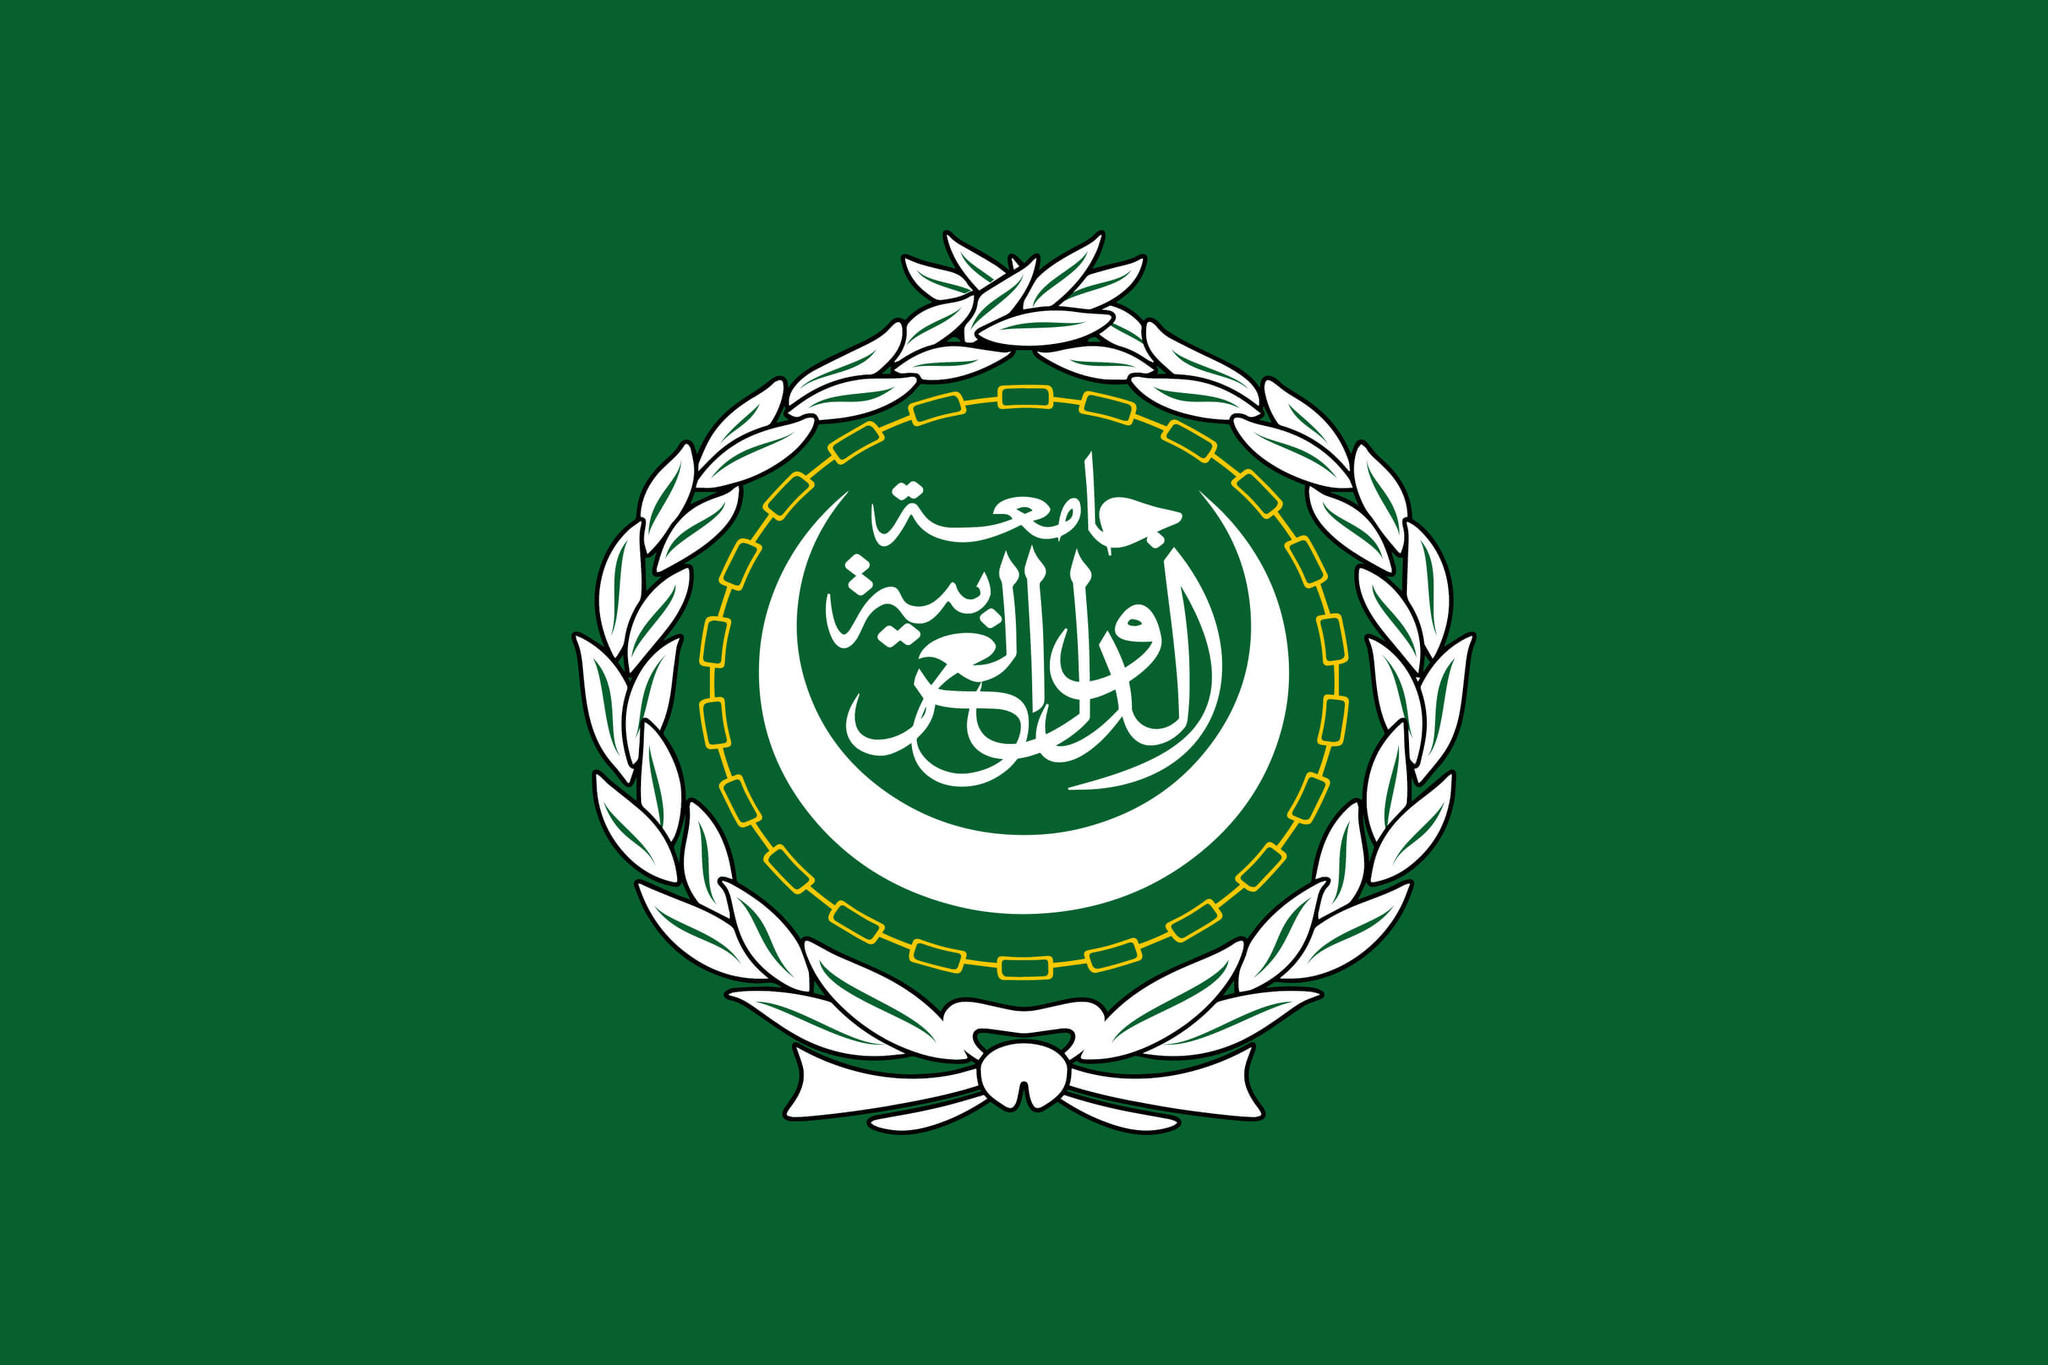 Picture of: Flag Of The Arab League Image And Meaning Arab League Flag Country Flags